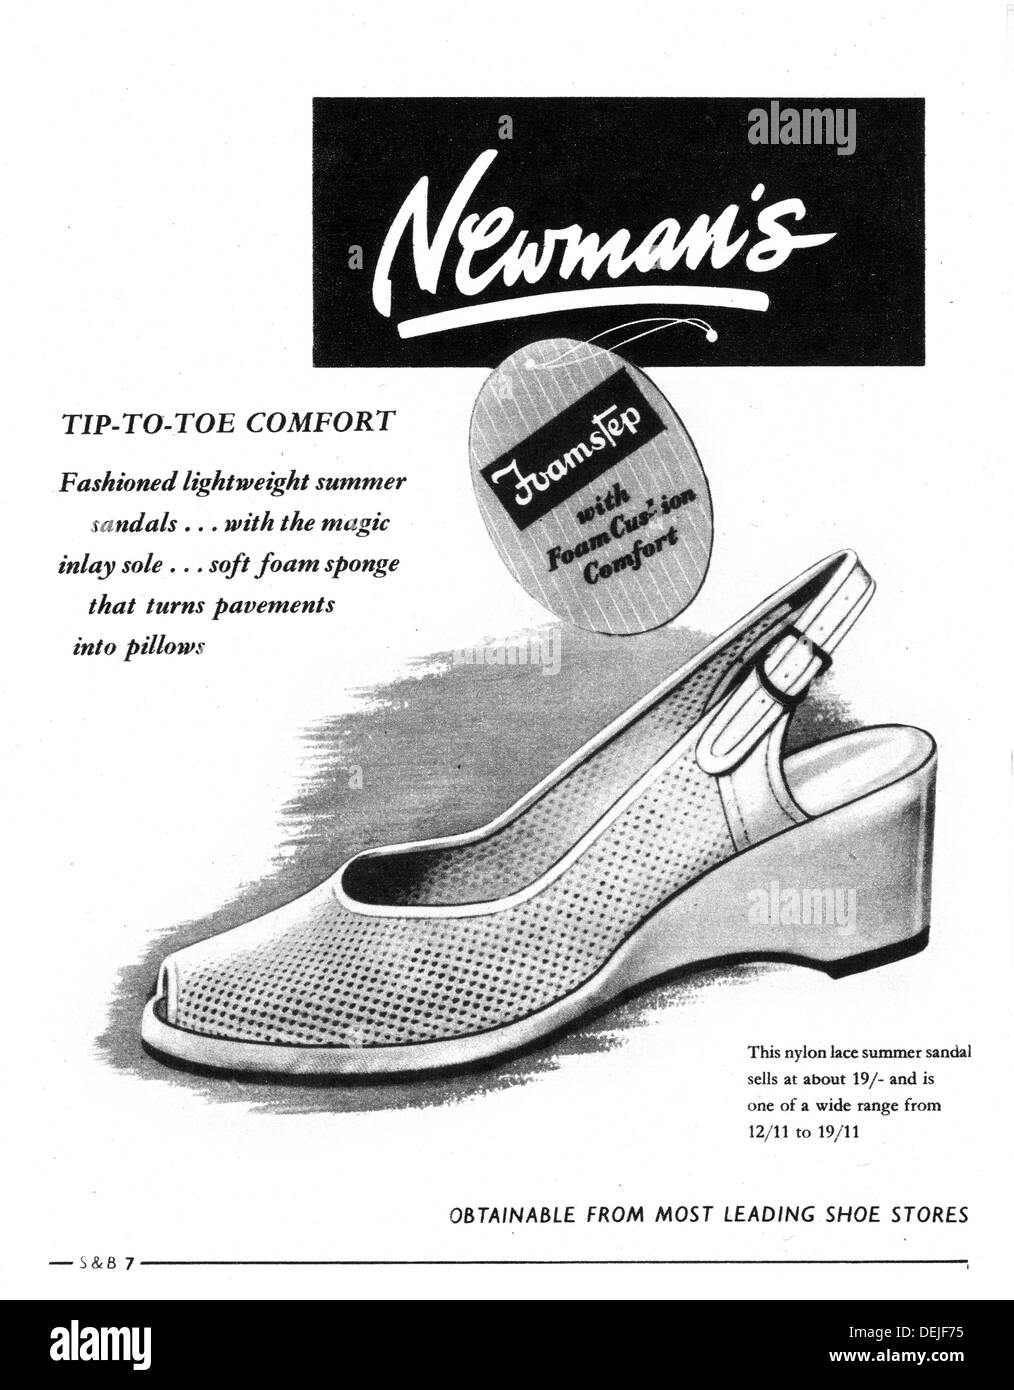 advert for women's shoes in 1953 - Stock Image